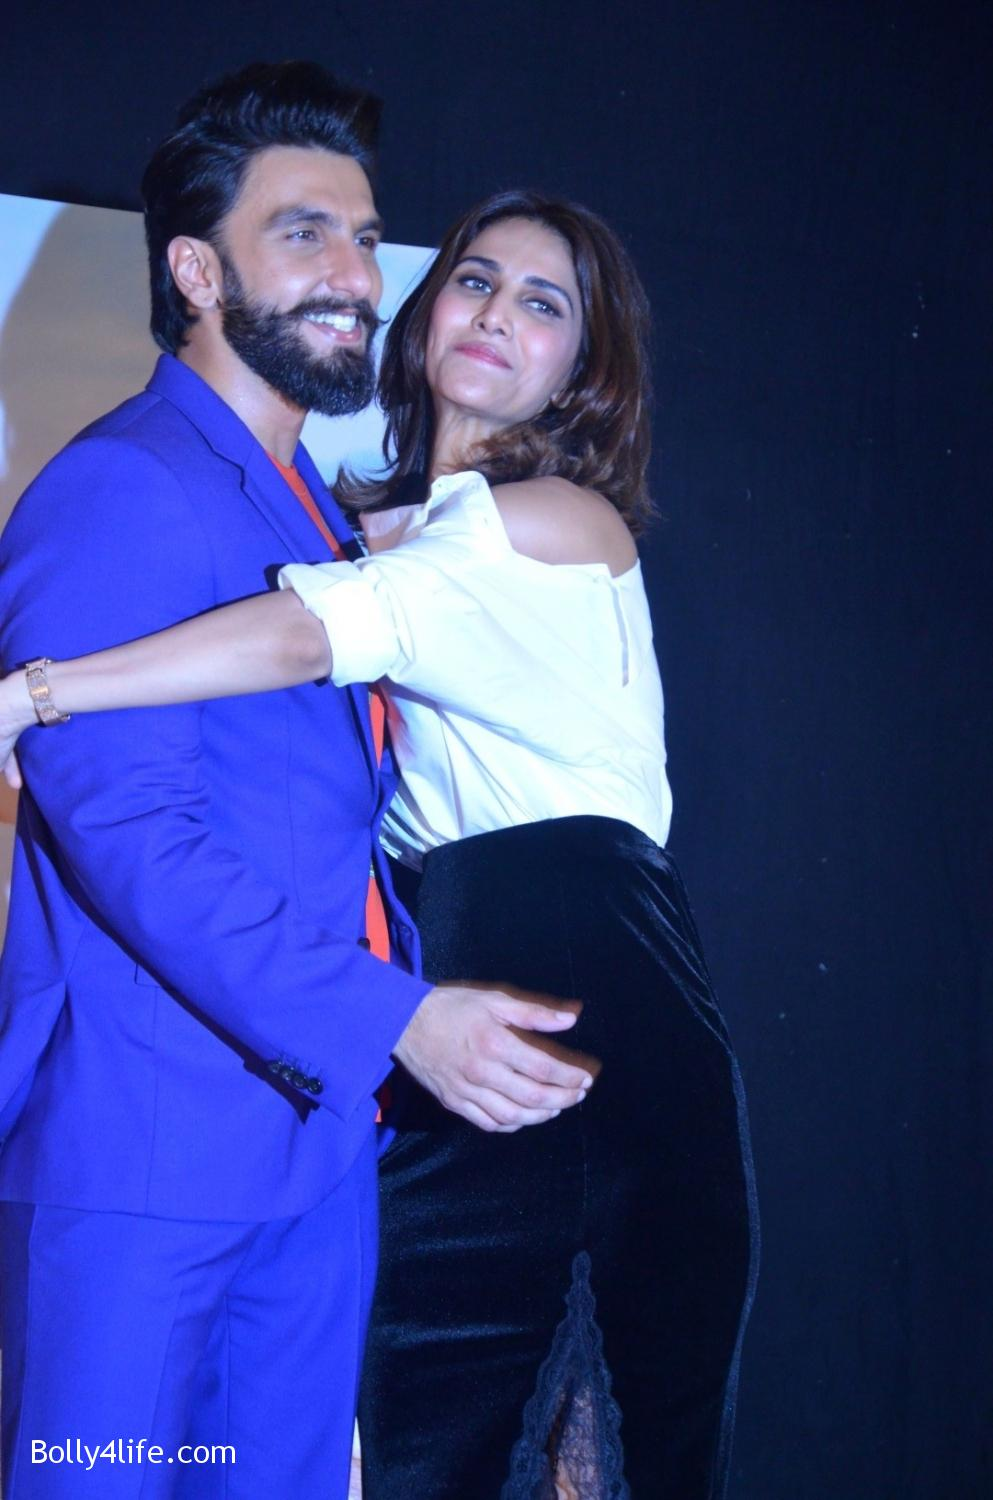 Ranveer-Singh-and-Vaani-Kapoor-during-the-song-launch-You-And-Me-from-film-Befikre-18.jpg